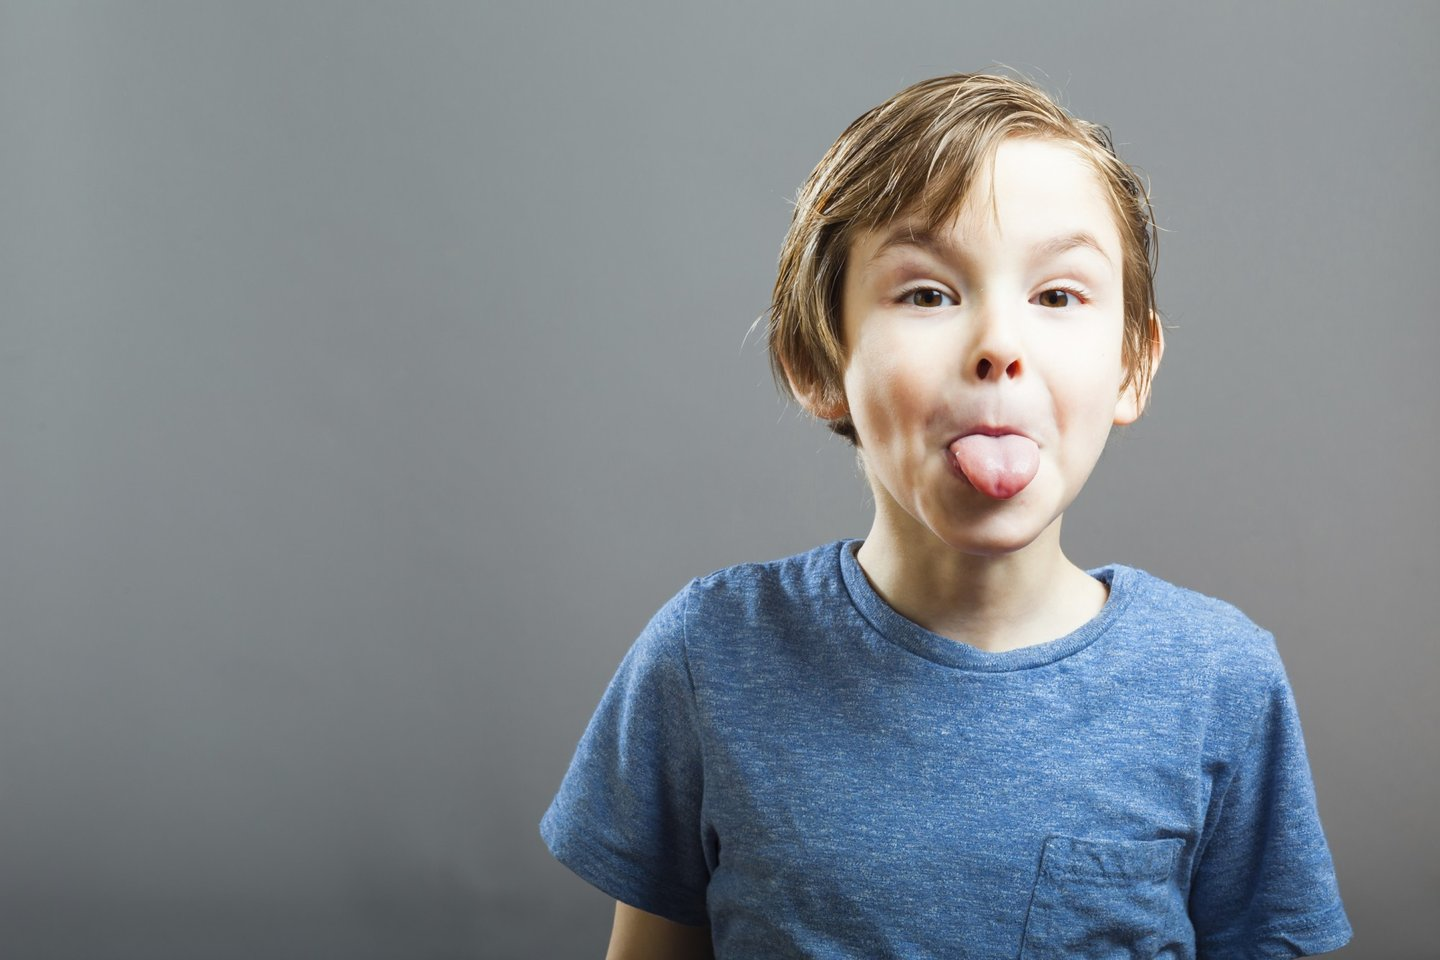 5 years, Gray, background, blue shirt, boy, child, copy space, cute, expression, face, fun, funny, grey, joking, kid, making faces, naughty, one, people, person, portrait, preschooler, sticking out, sticking out tongue, tongue,